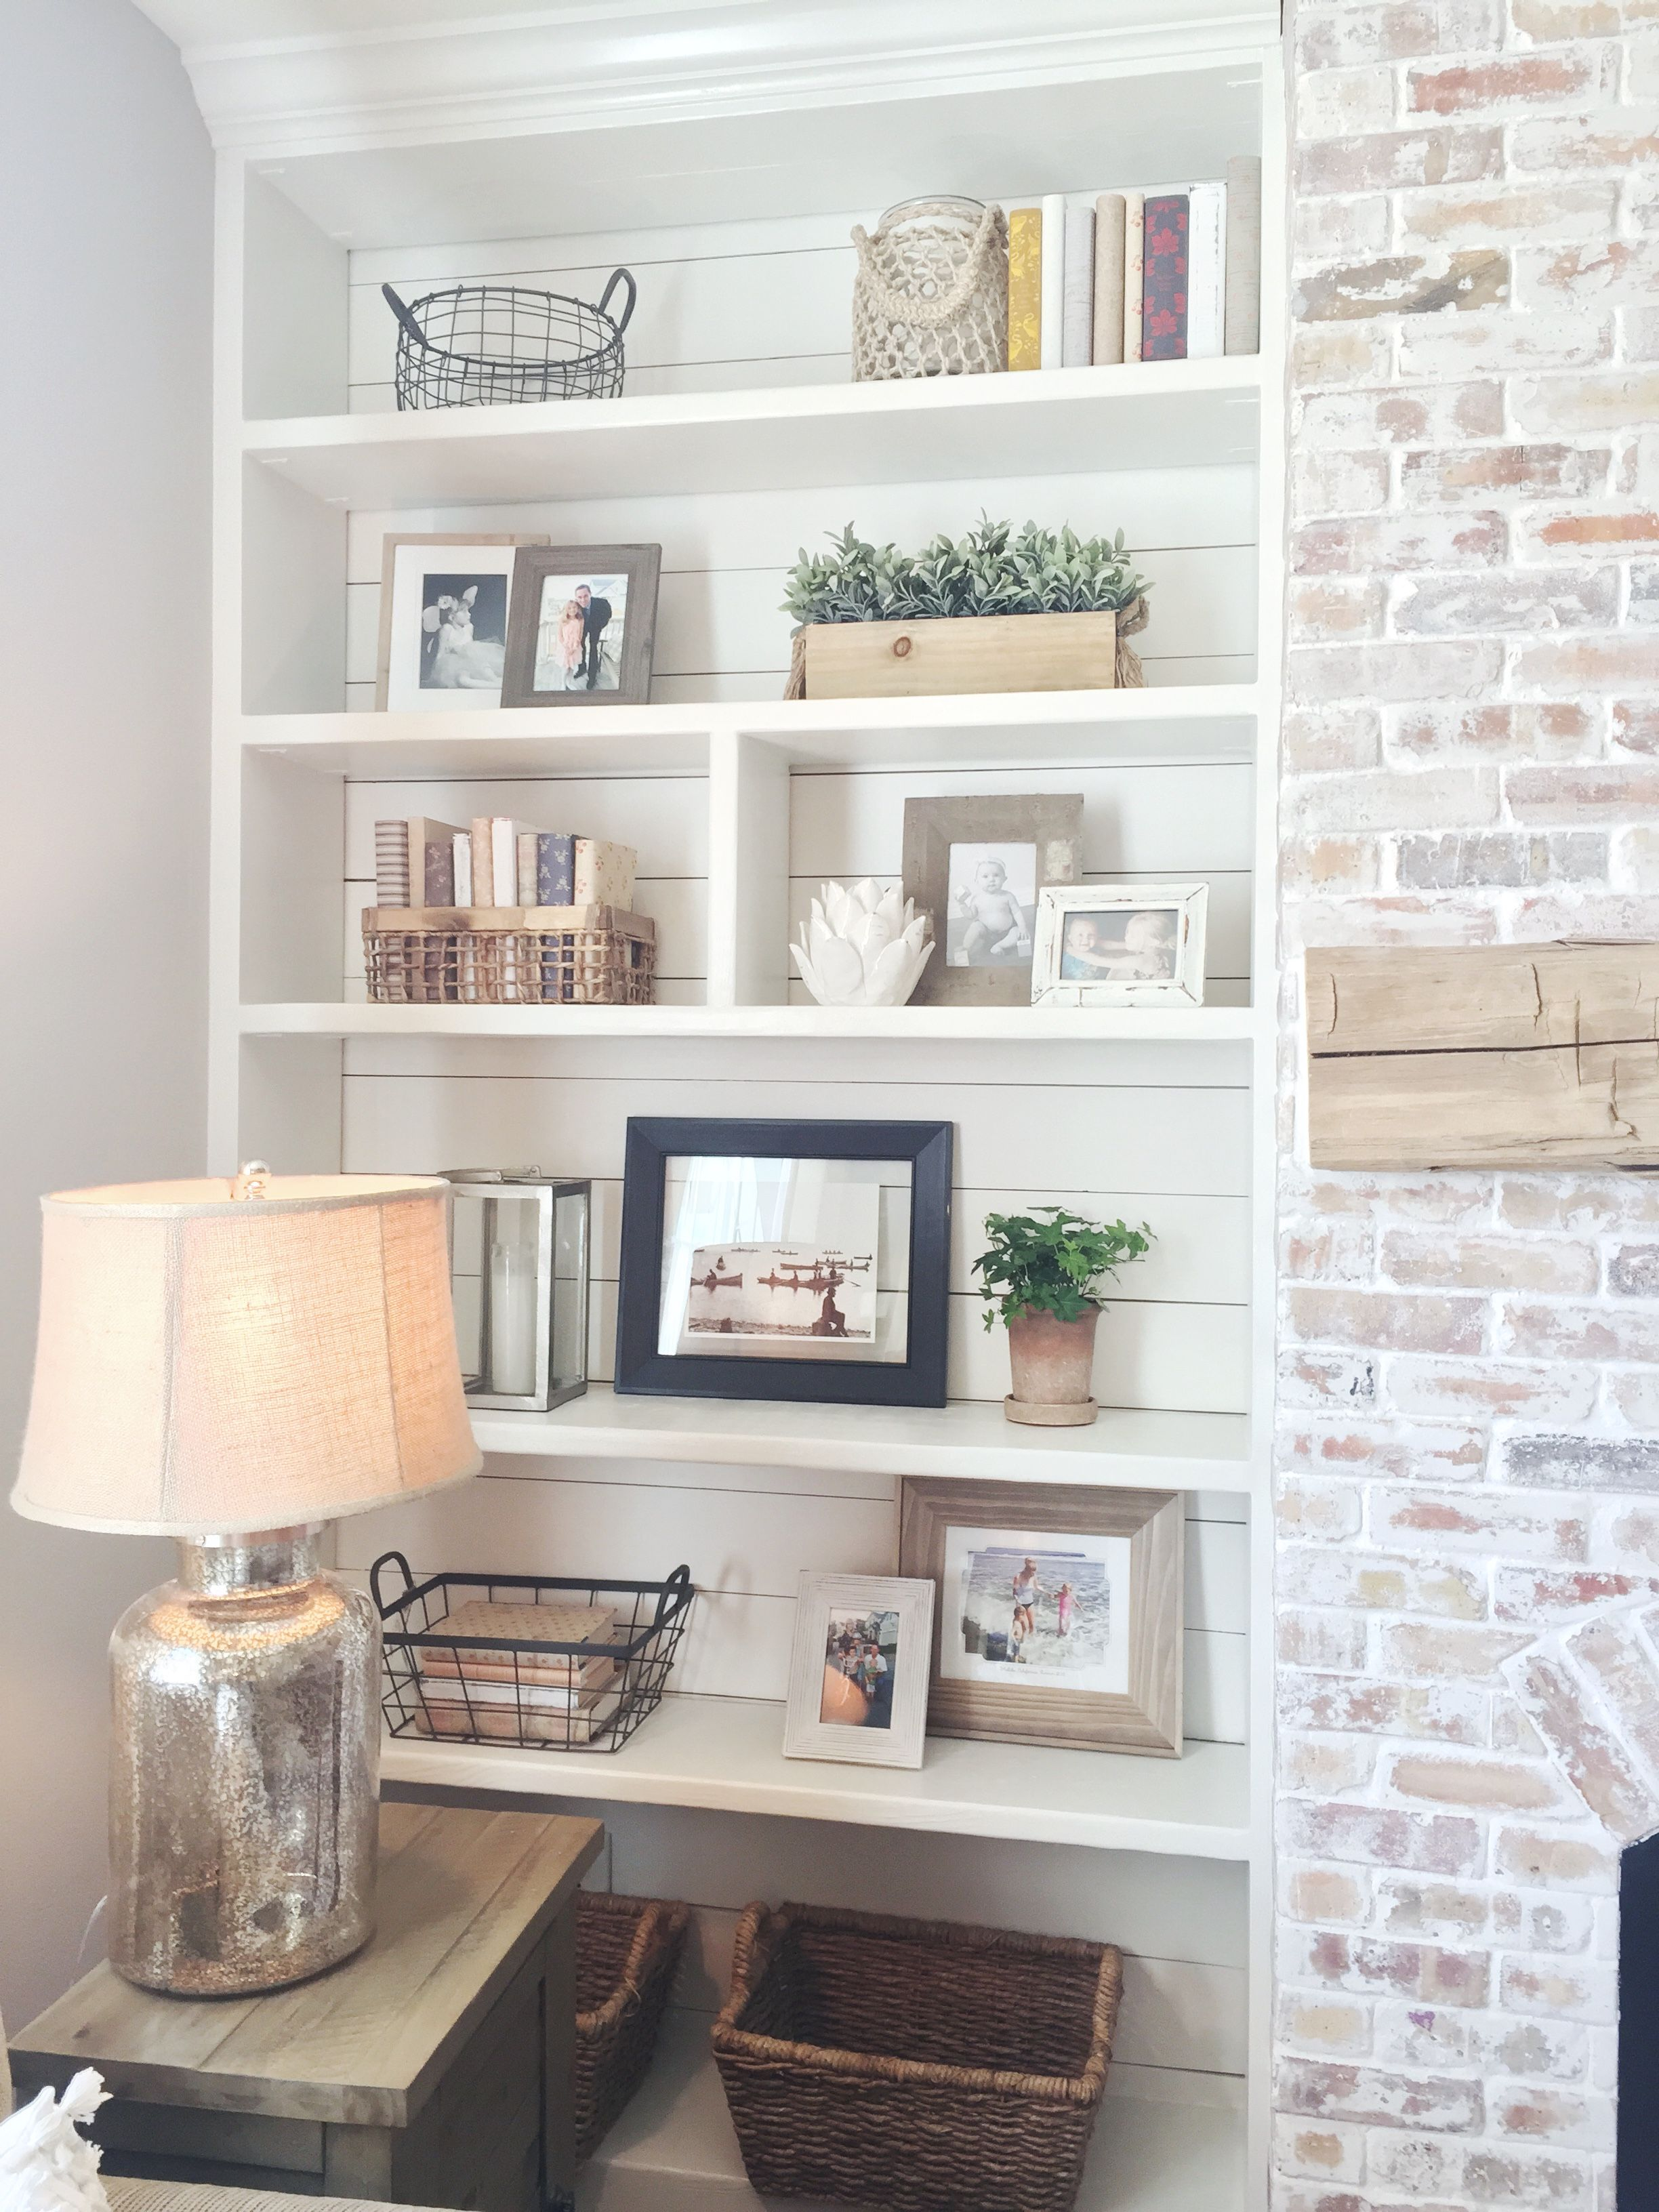 Builtin bookshelves styling shiplap whitewash brick fireplace